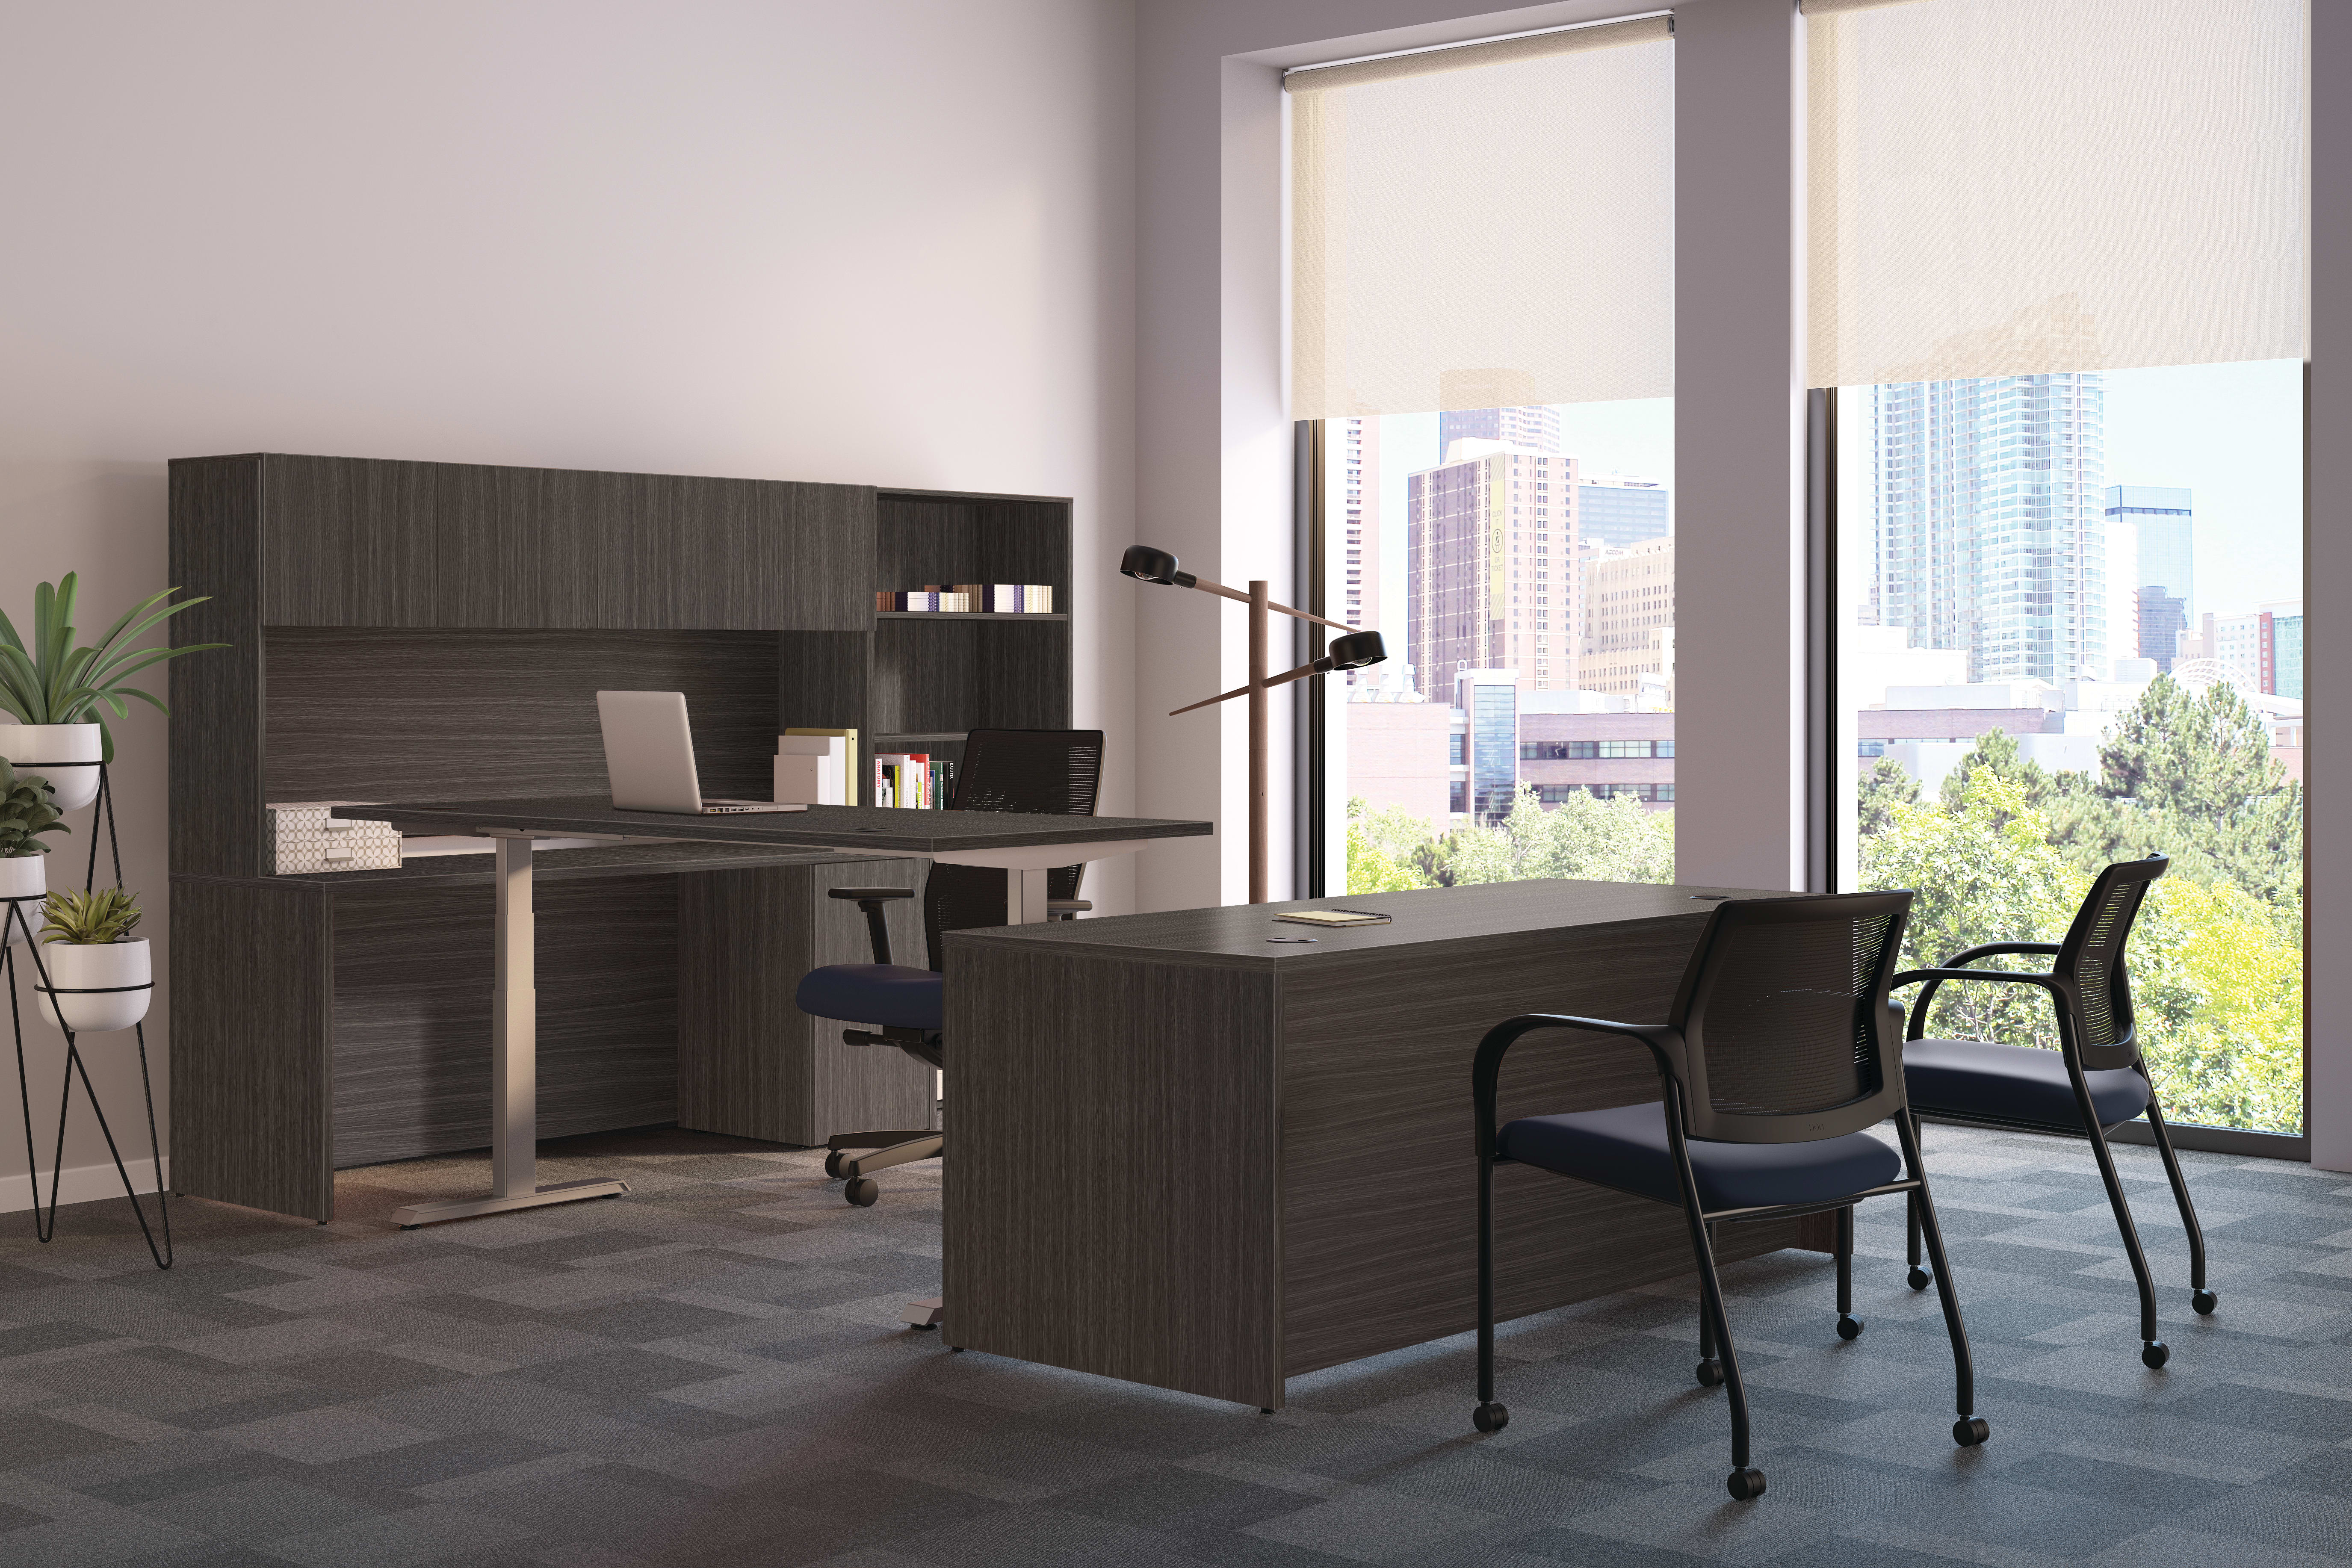 Mod desk with height-adjustable table and guest seating.